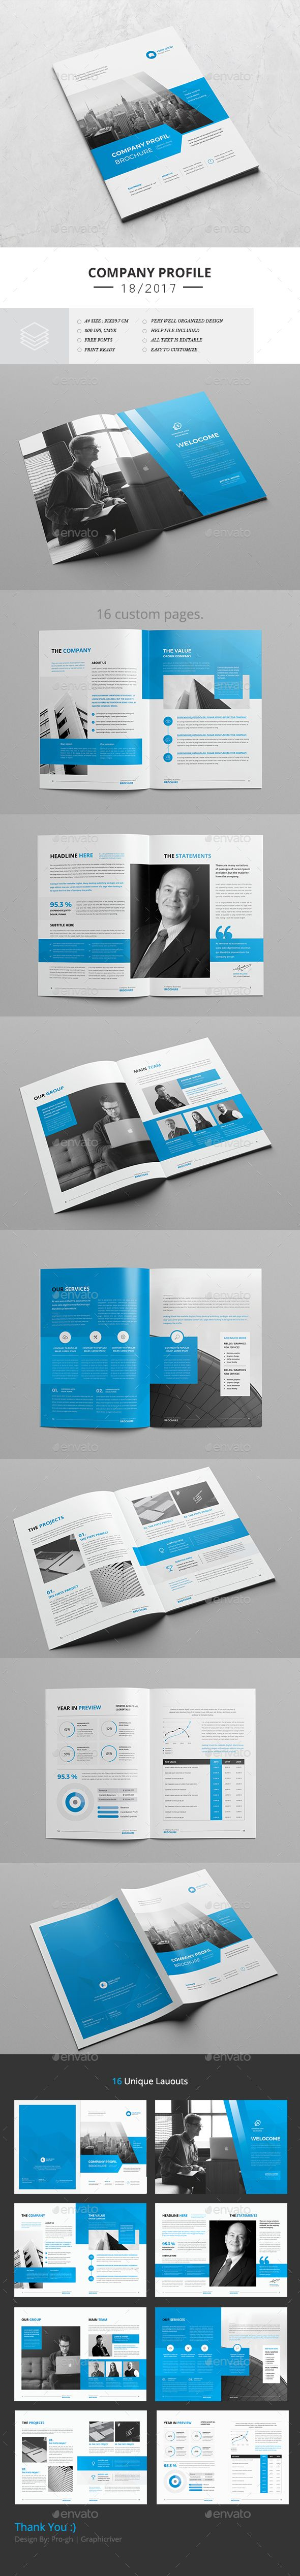 Corporate Brochure Template InDesign INDD - 16 Pages | Brochure ...